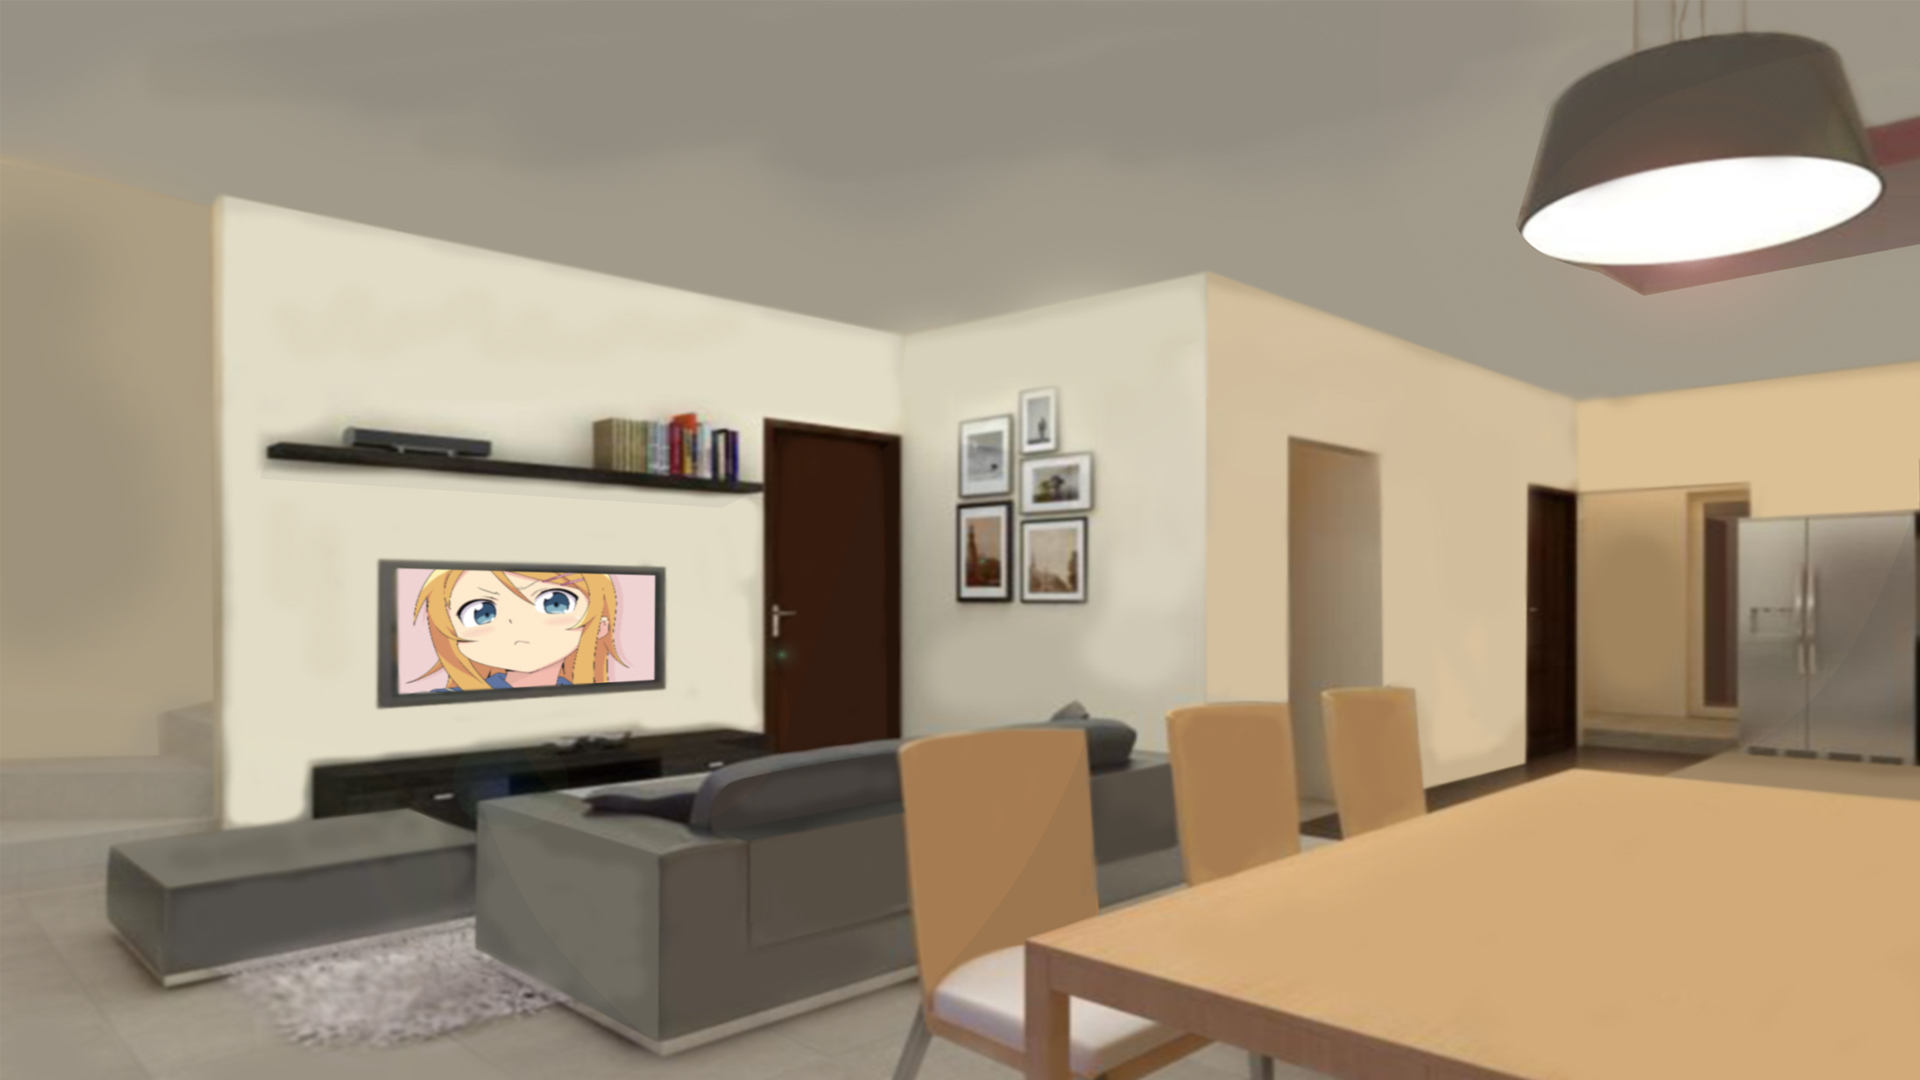 Anime Living Room Background By Rhiezkyrach On DeviantArt